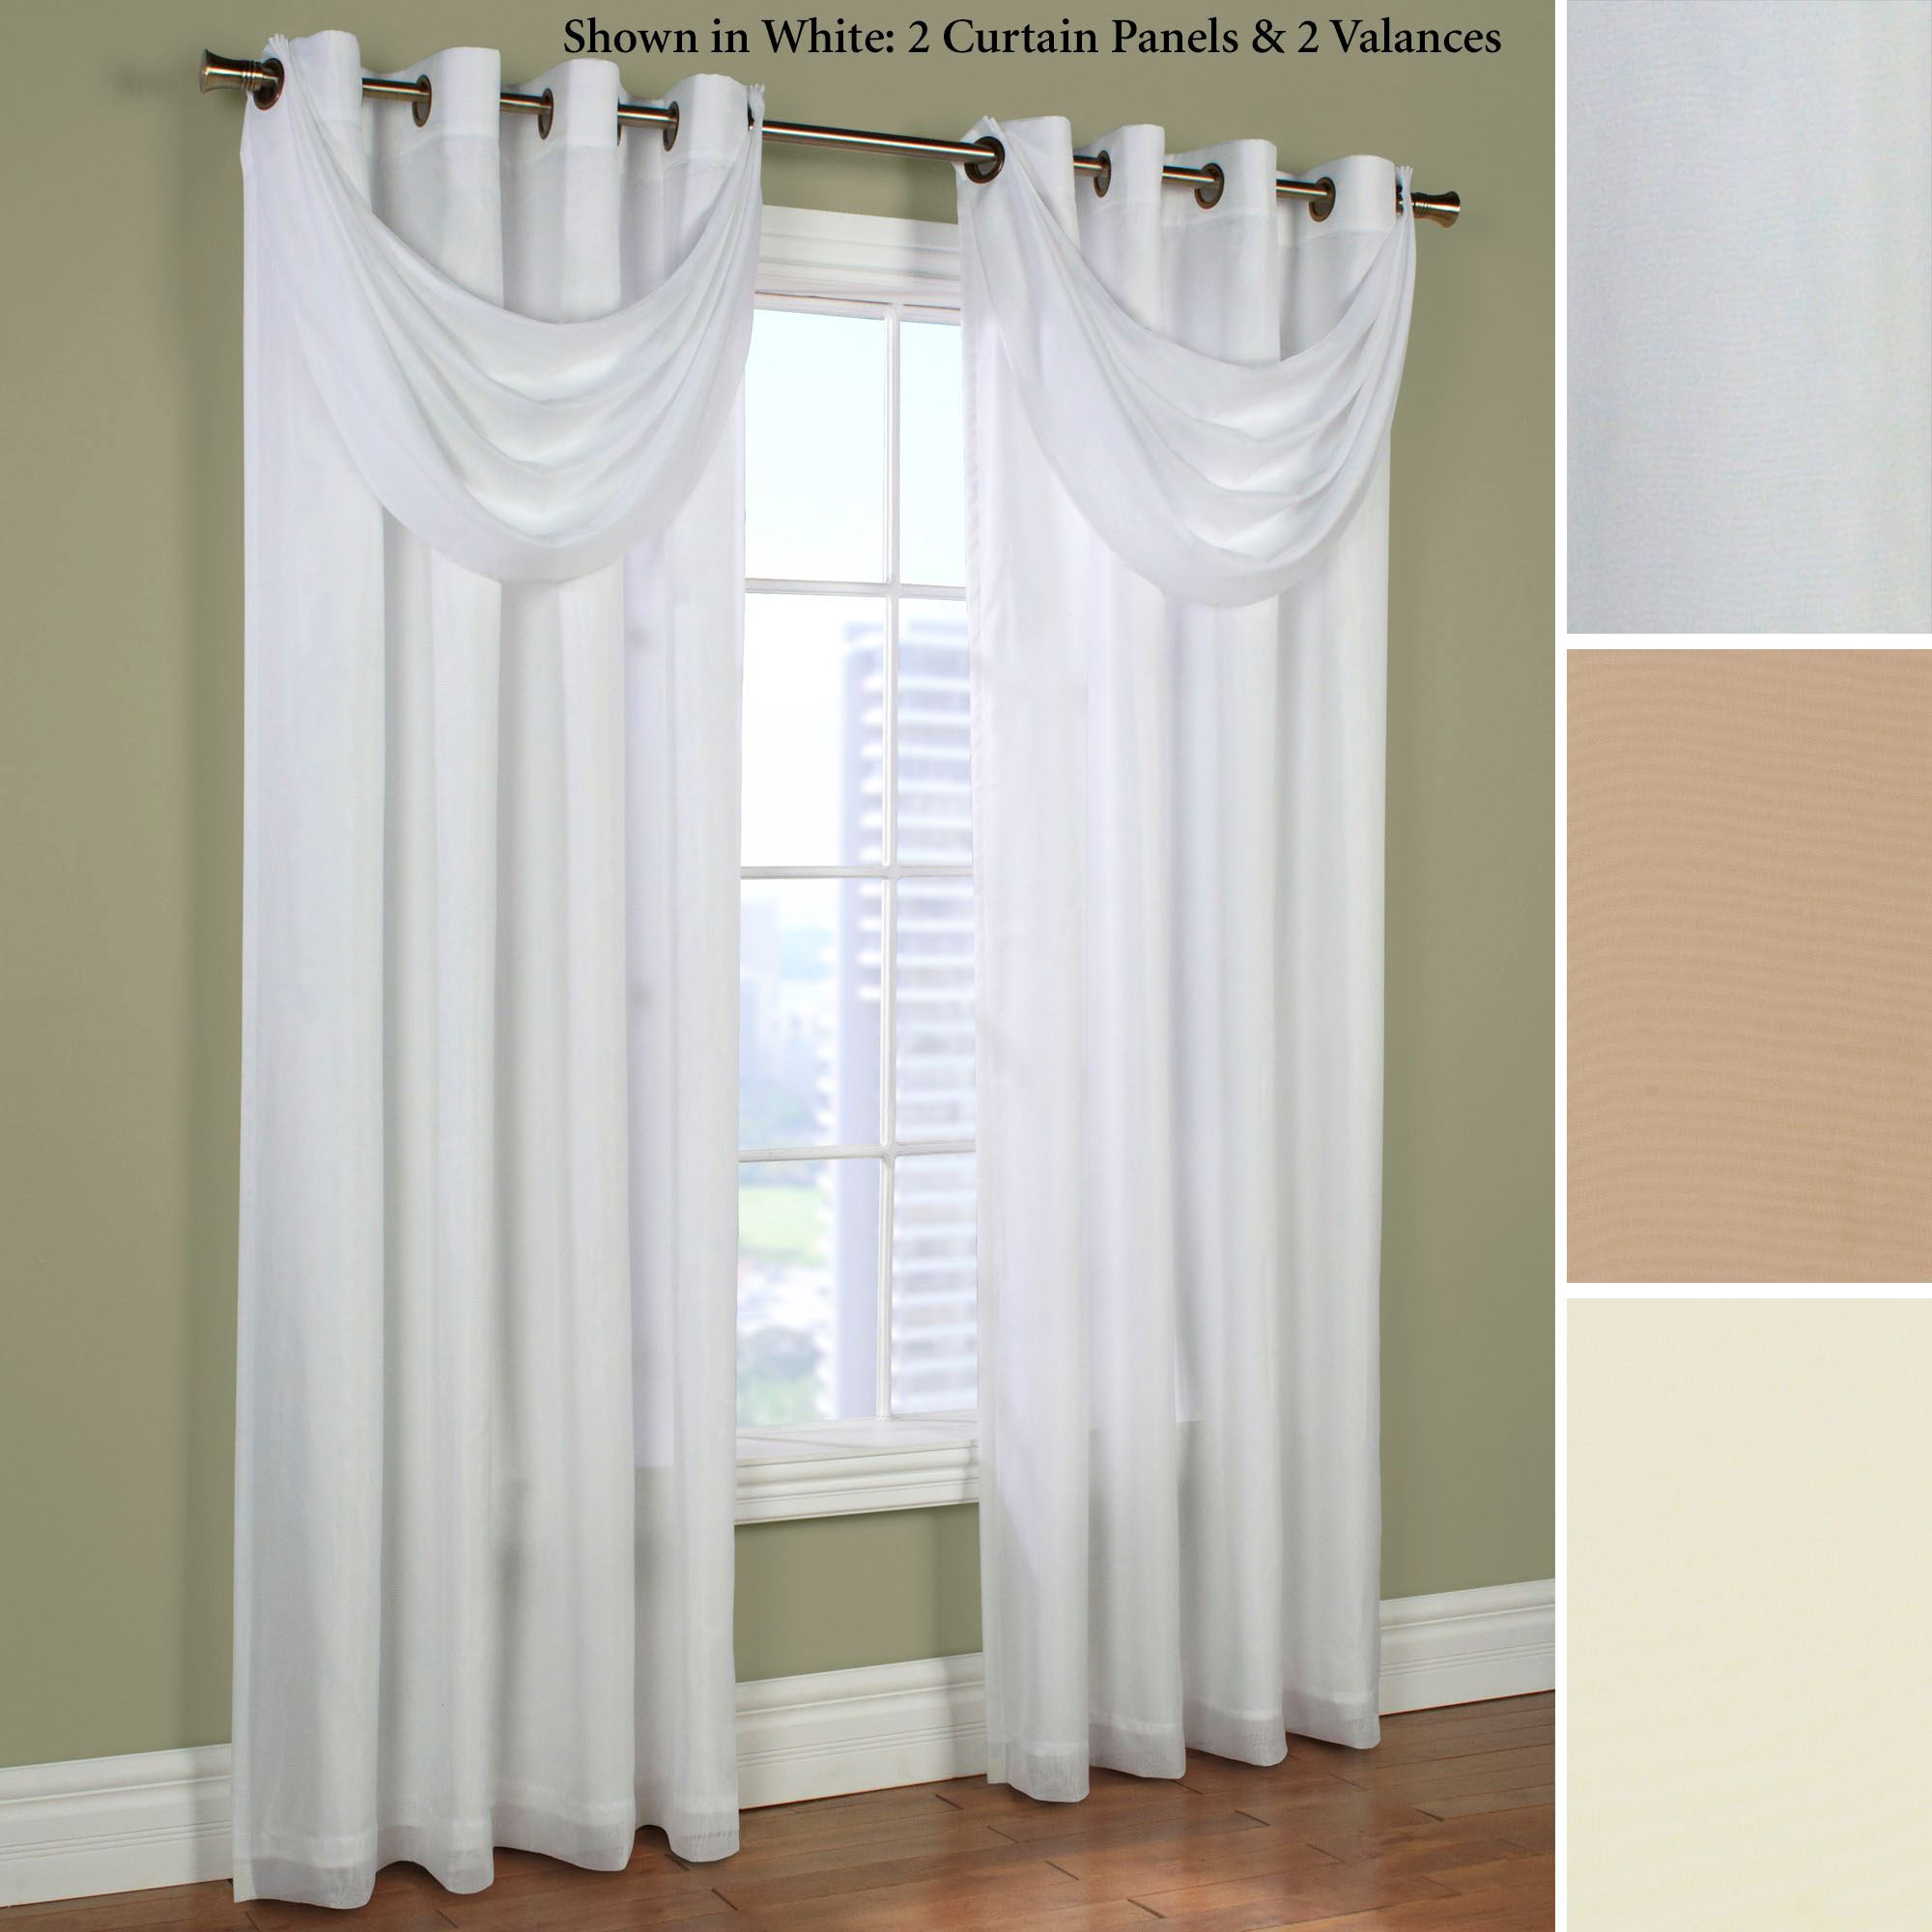 plus window valances valance ideas curtain furniture curtains perfect treatments kitchen treatment of